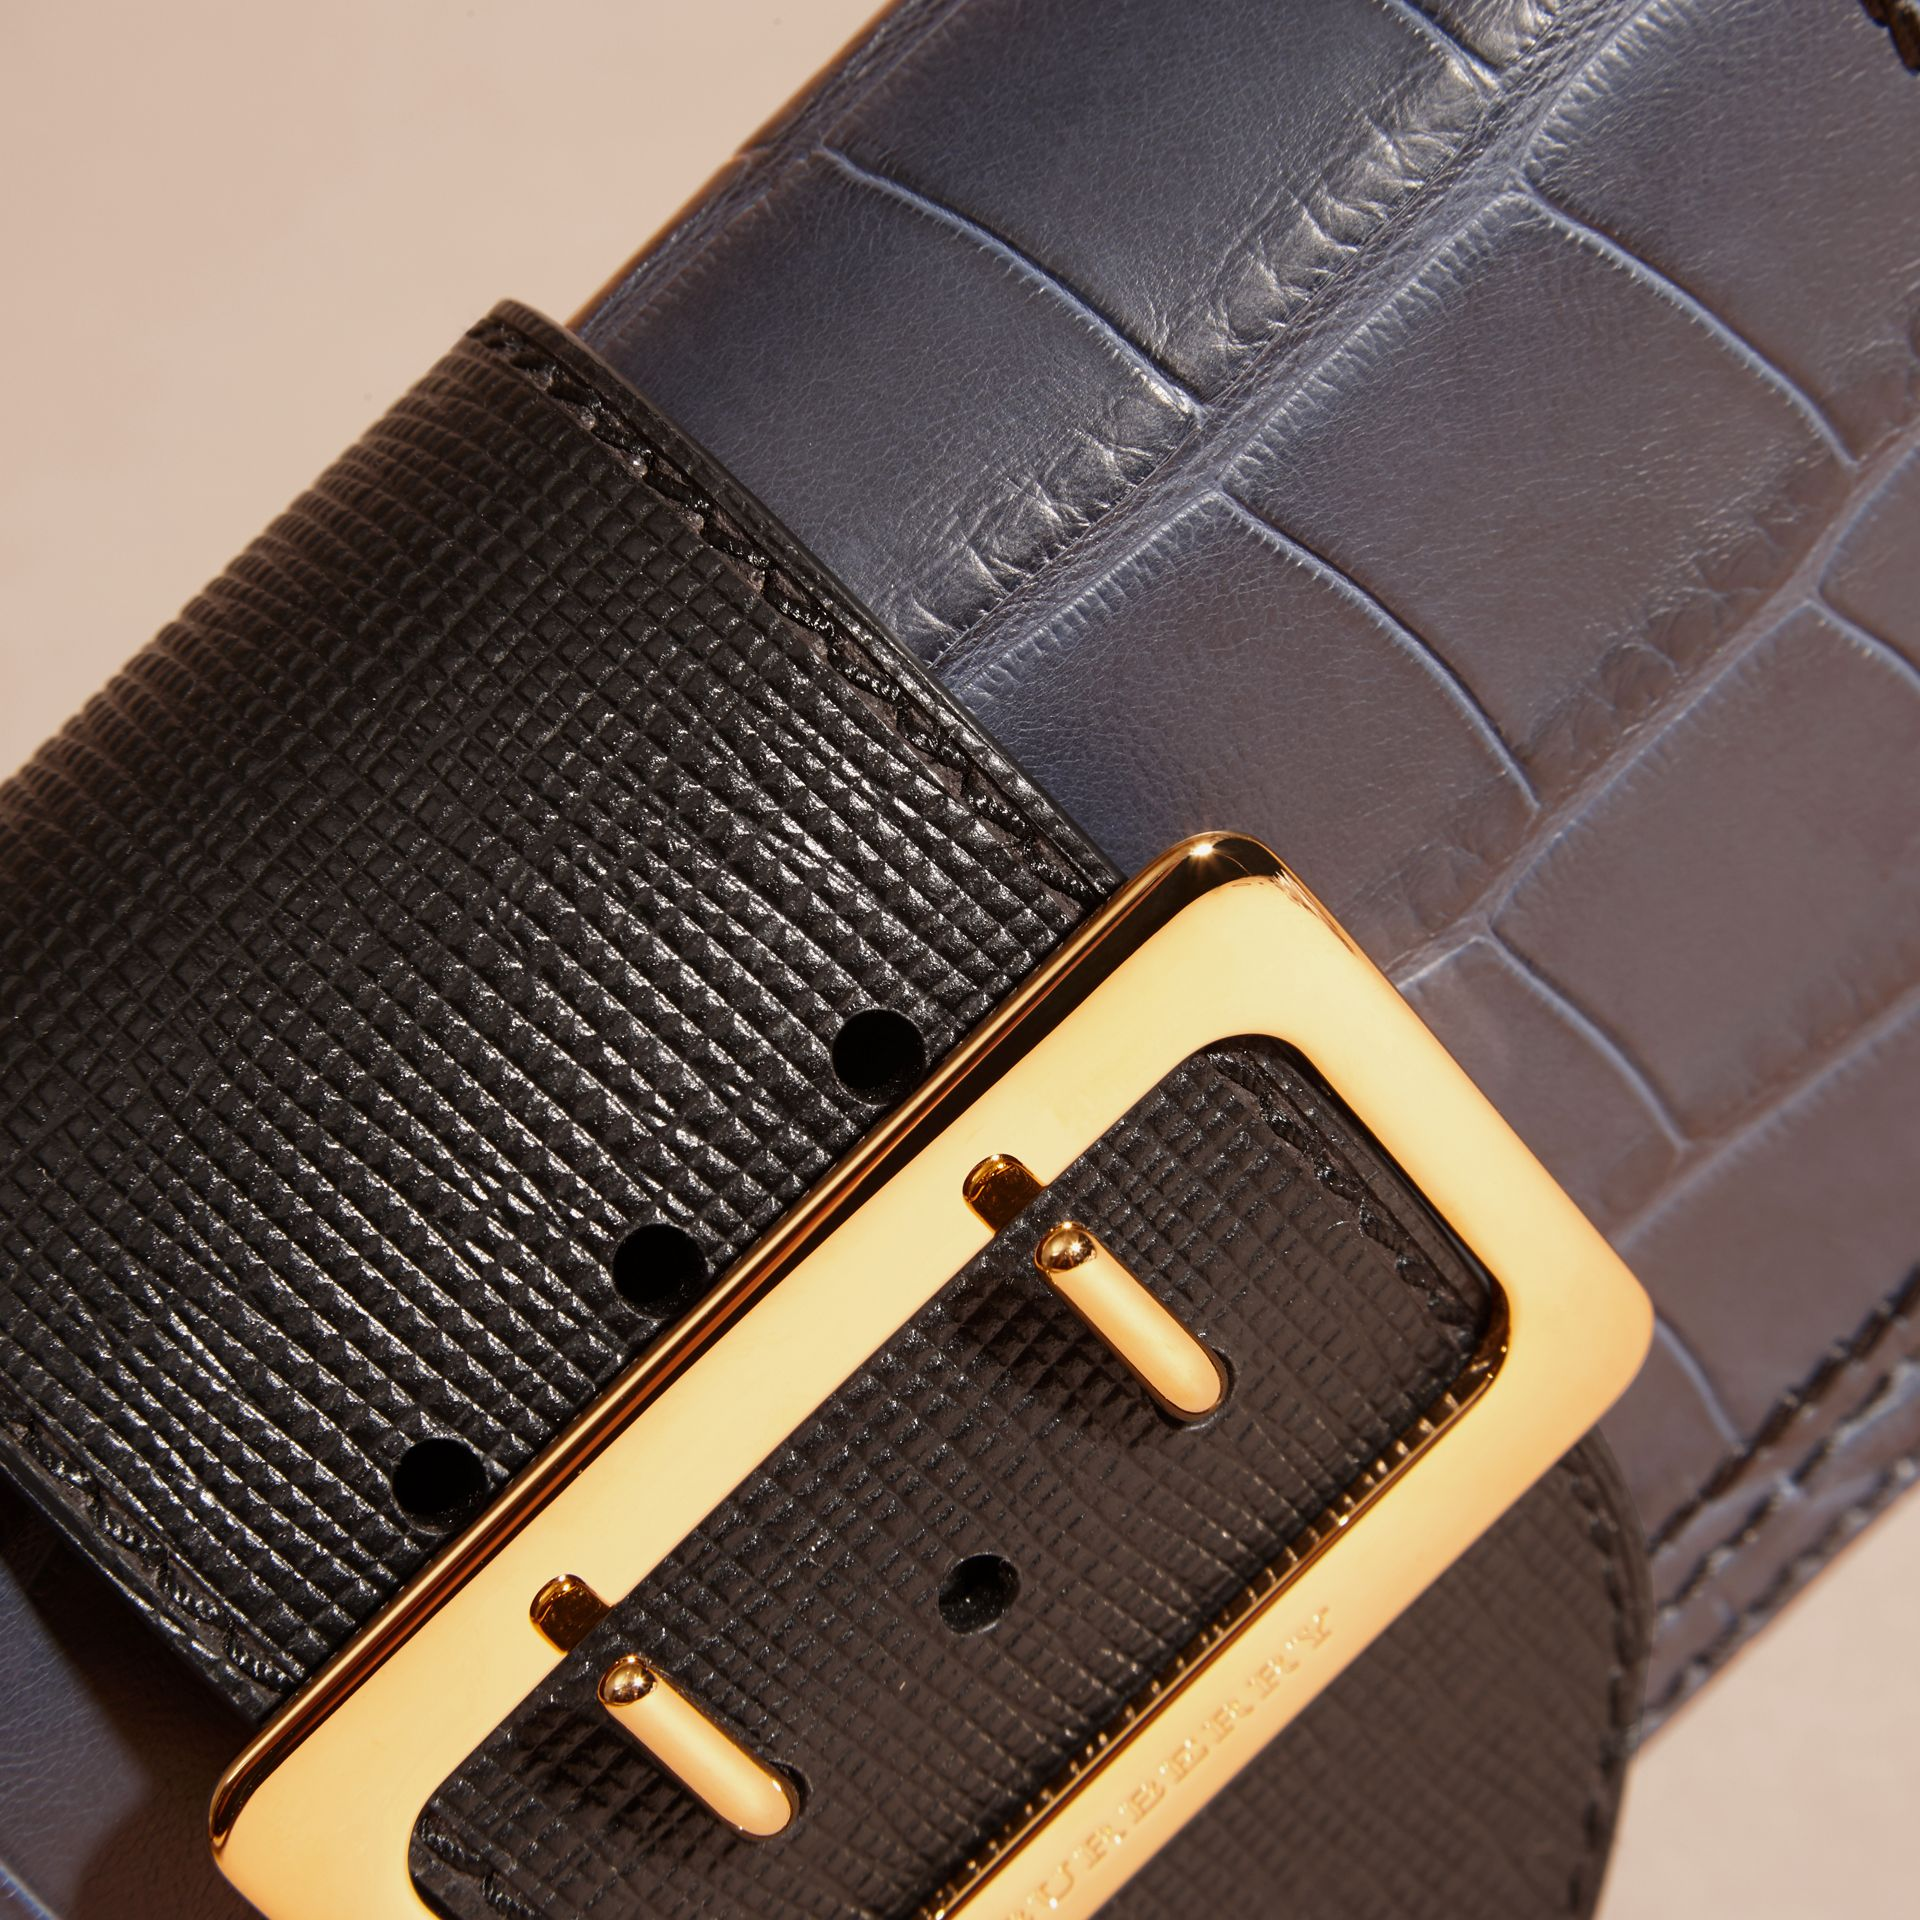 Petit sac The Buckle en alligator et cuir Marine/noir - photo de la galerie 7